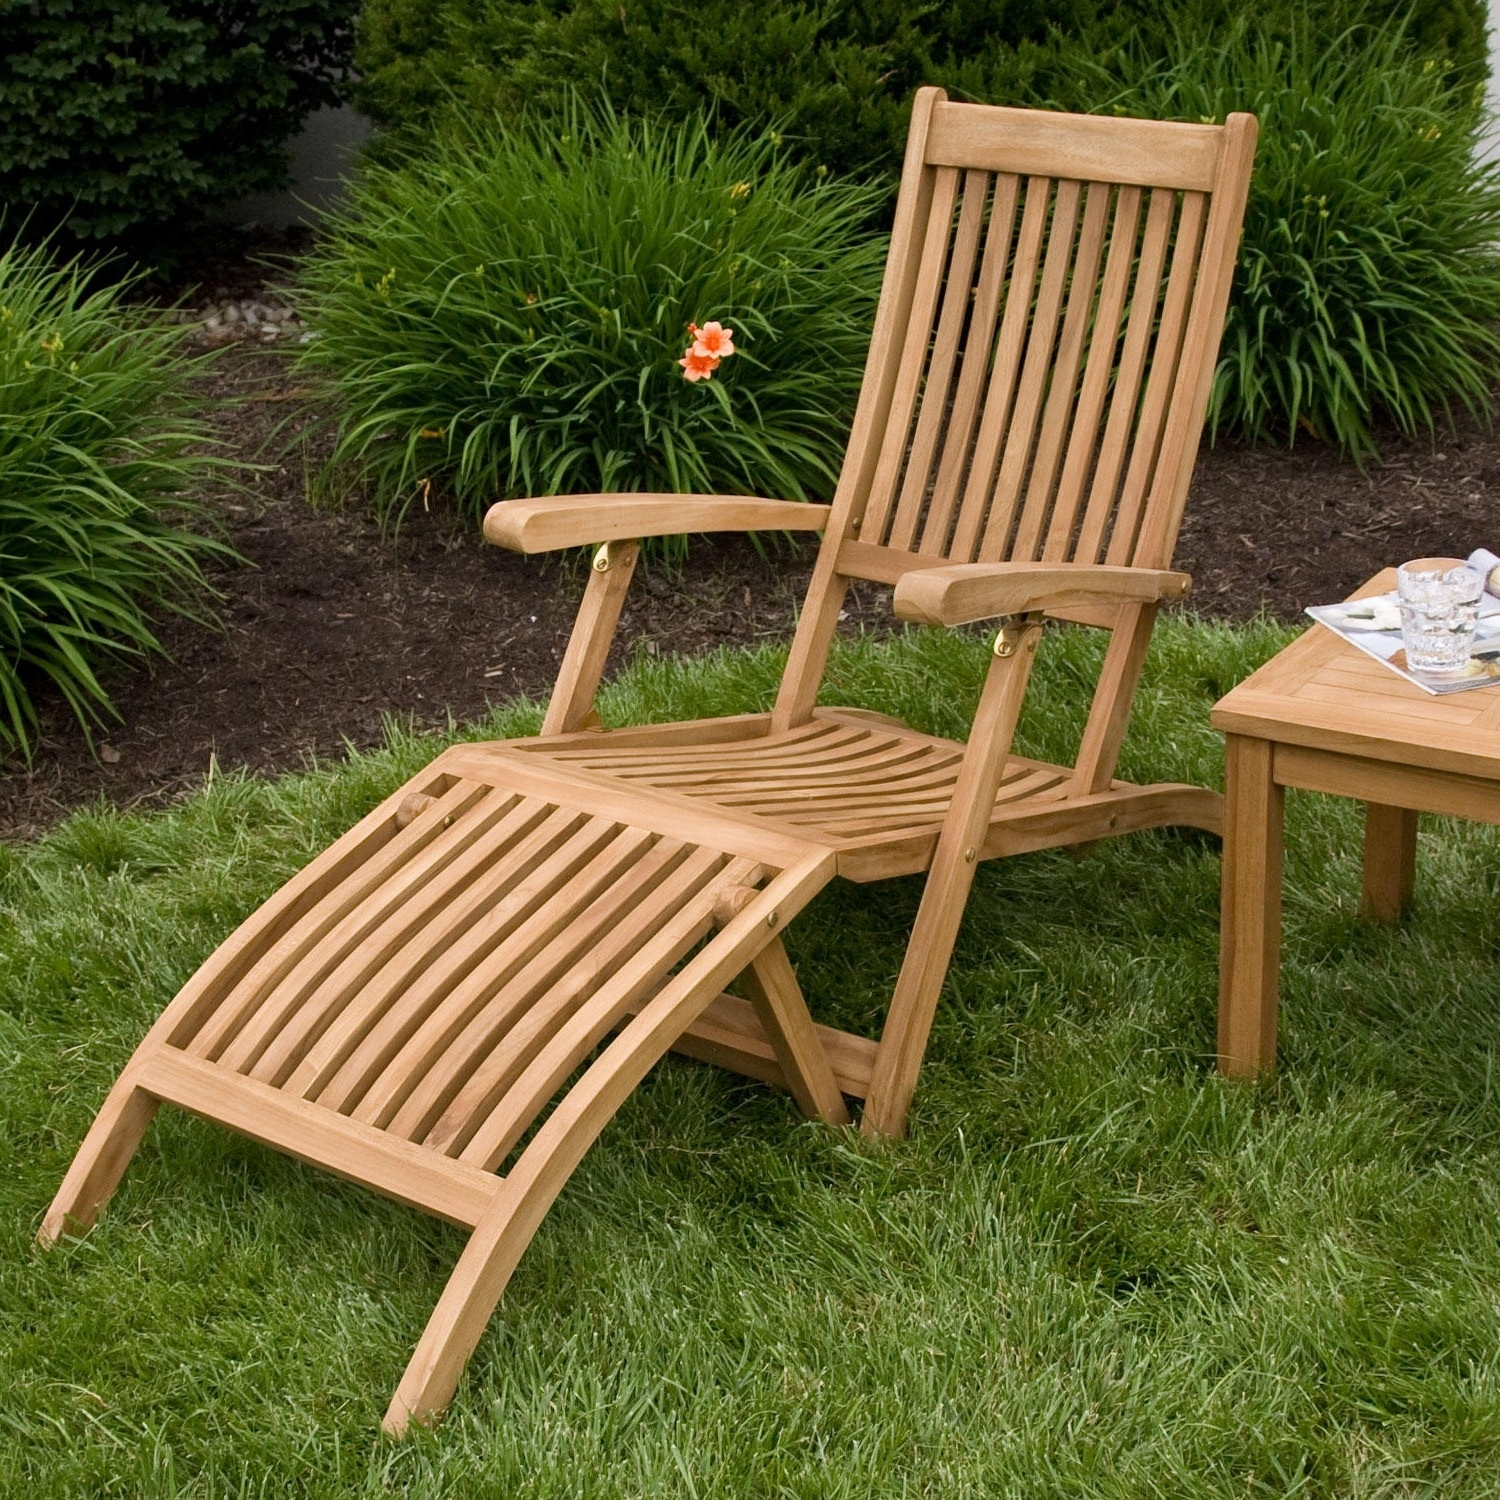 Holley Teak Outdoor Folding Steamer Lounge Chair – Outdoor Throughout Recent Cheap Folding Chaise Lounge Chairs For Outdoor (View 10 of 15)